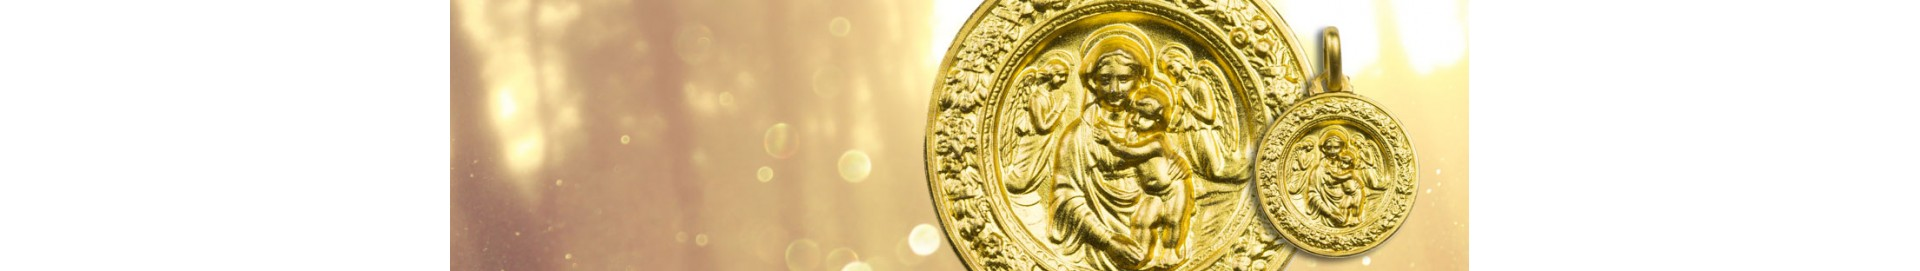 Gold Plated Saint Medals Online – The Vatican Gift Shop